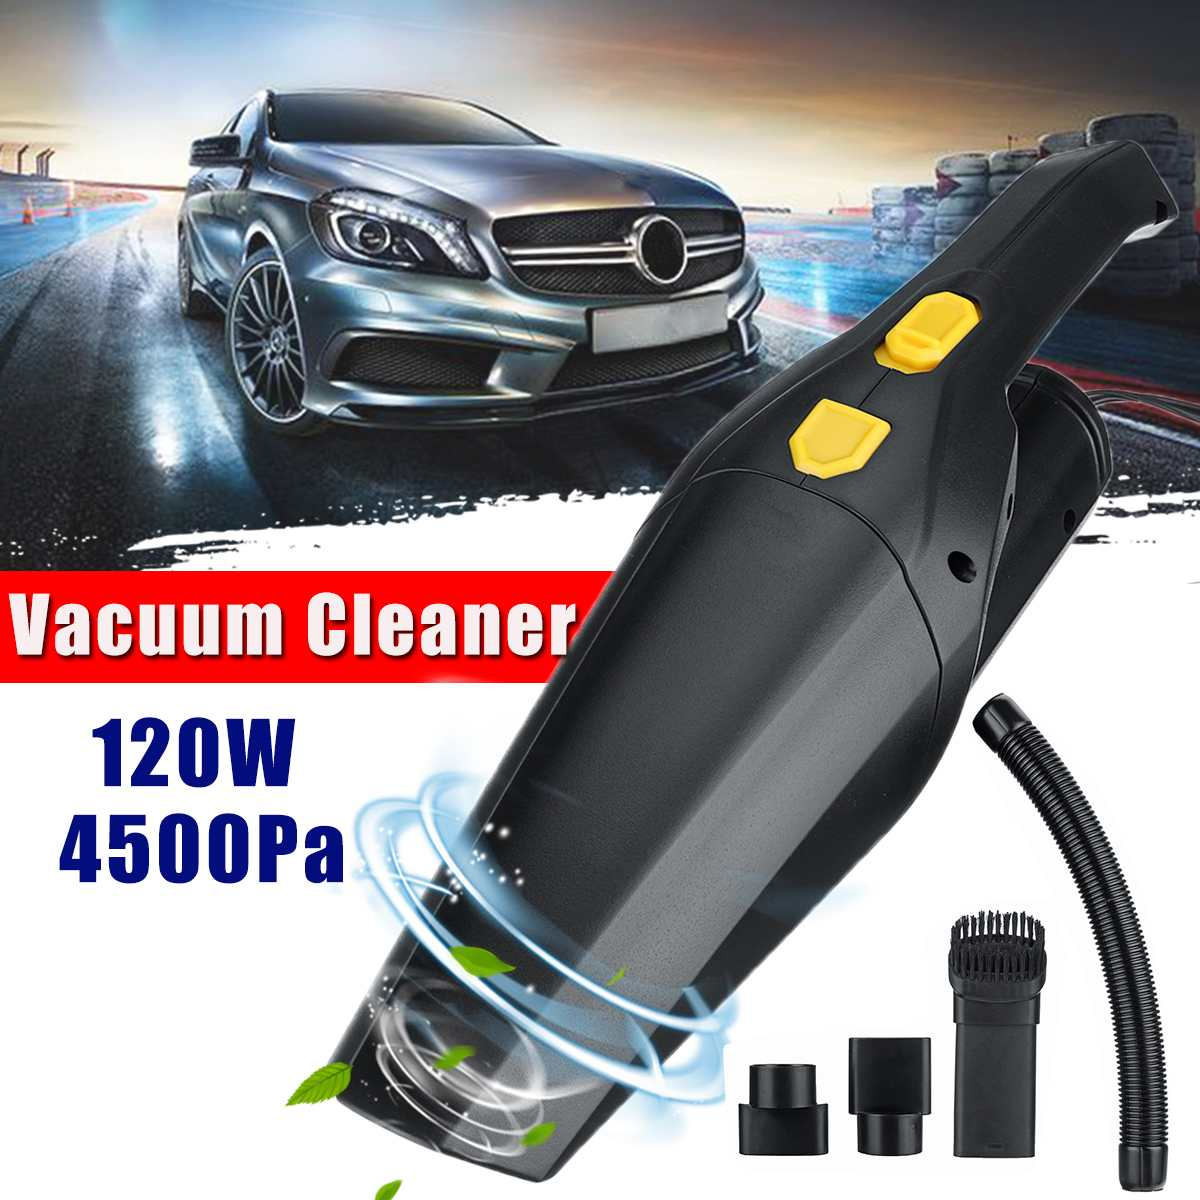 120W 4500pa Handheld Vacuum Cleaner High Suction For Home Car Vacuum Cleaner Wet And Dry Dual-use Aspirador